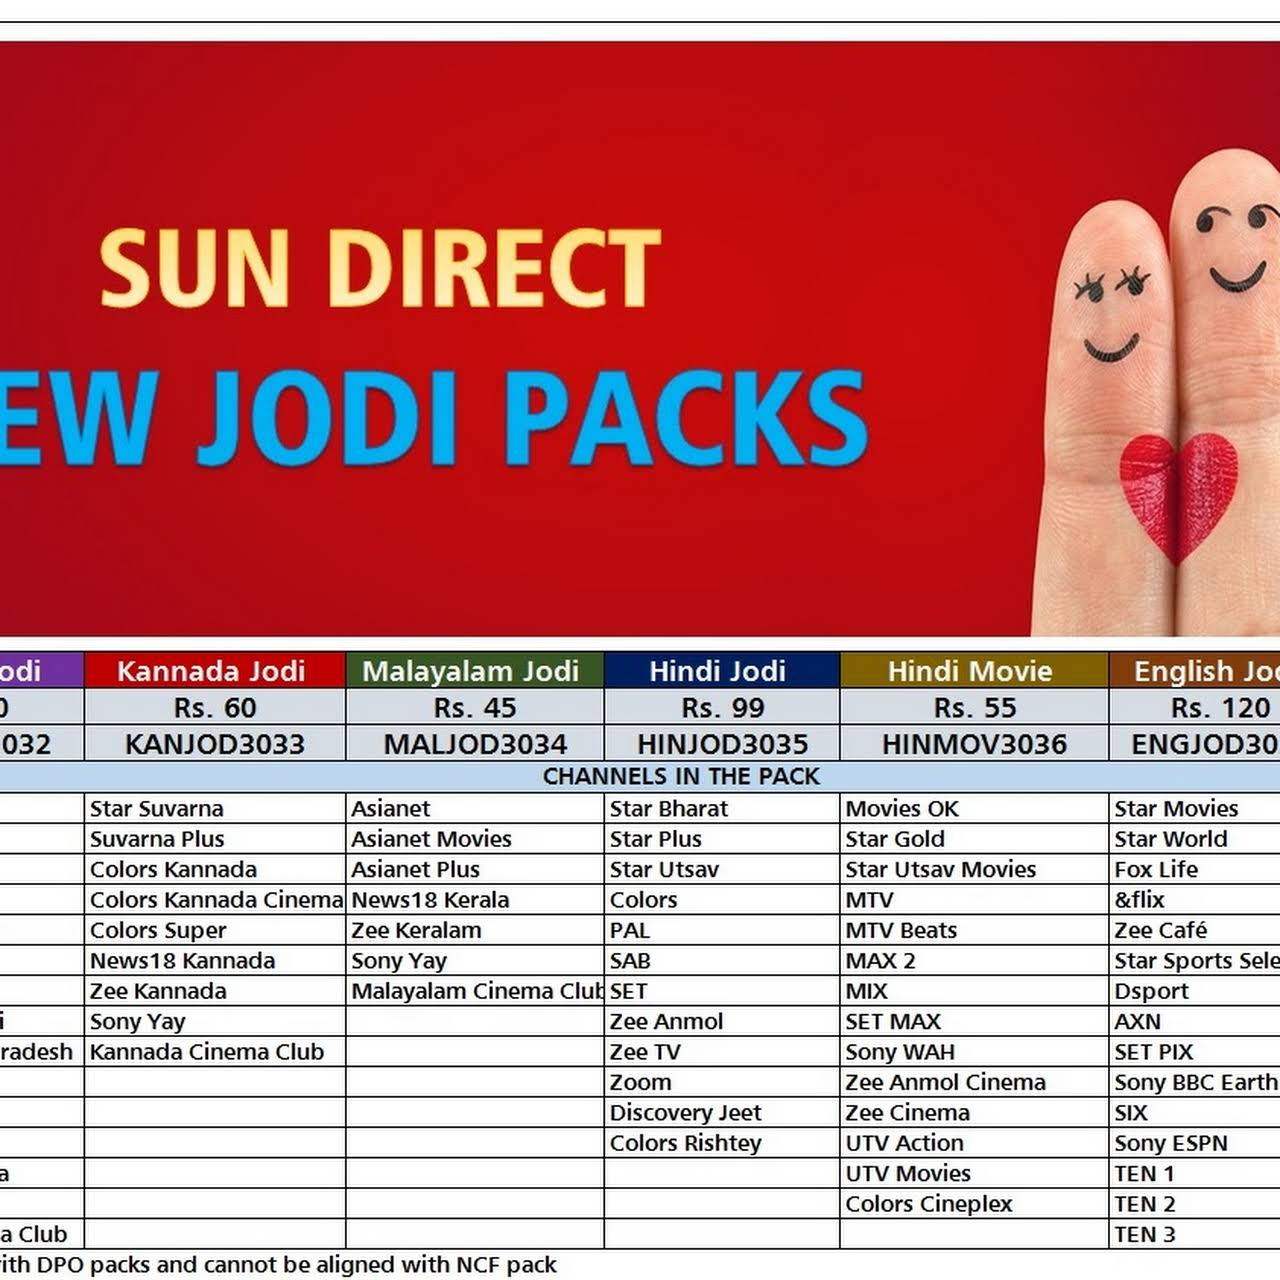 SUN Direct Exclusive Office - Electronics Retail And Repair Shop in